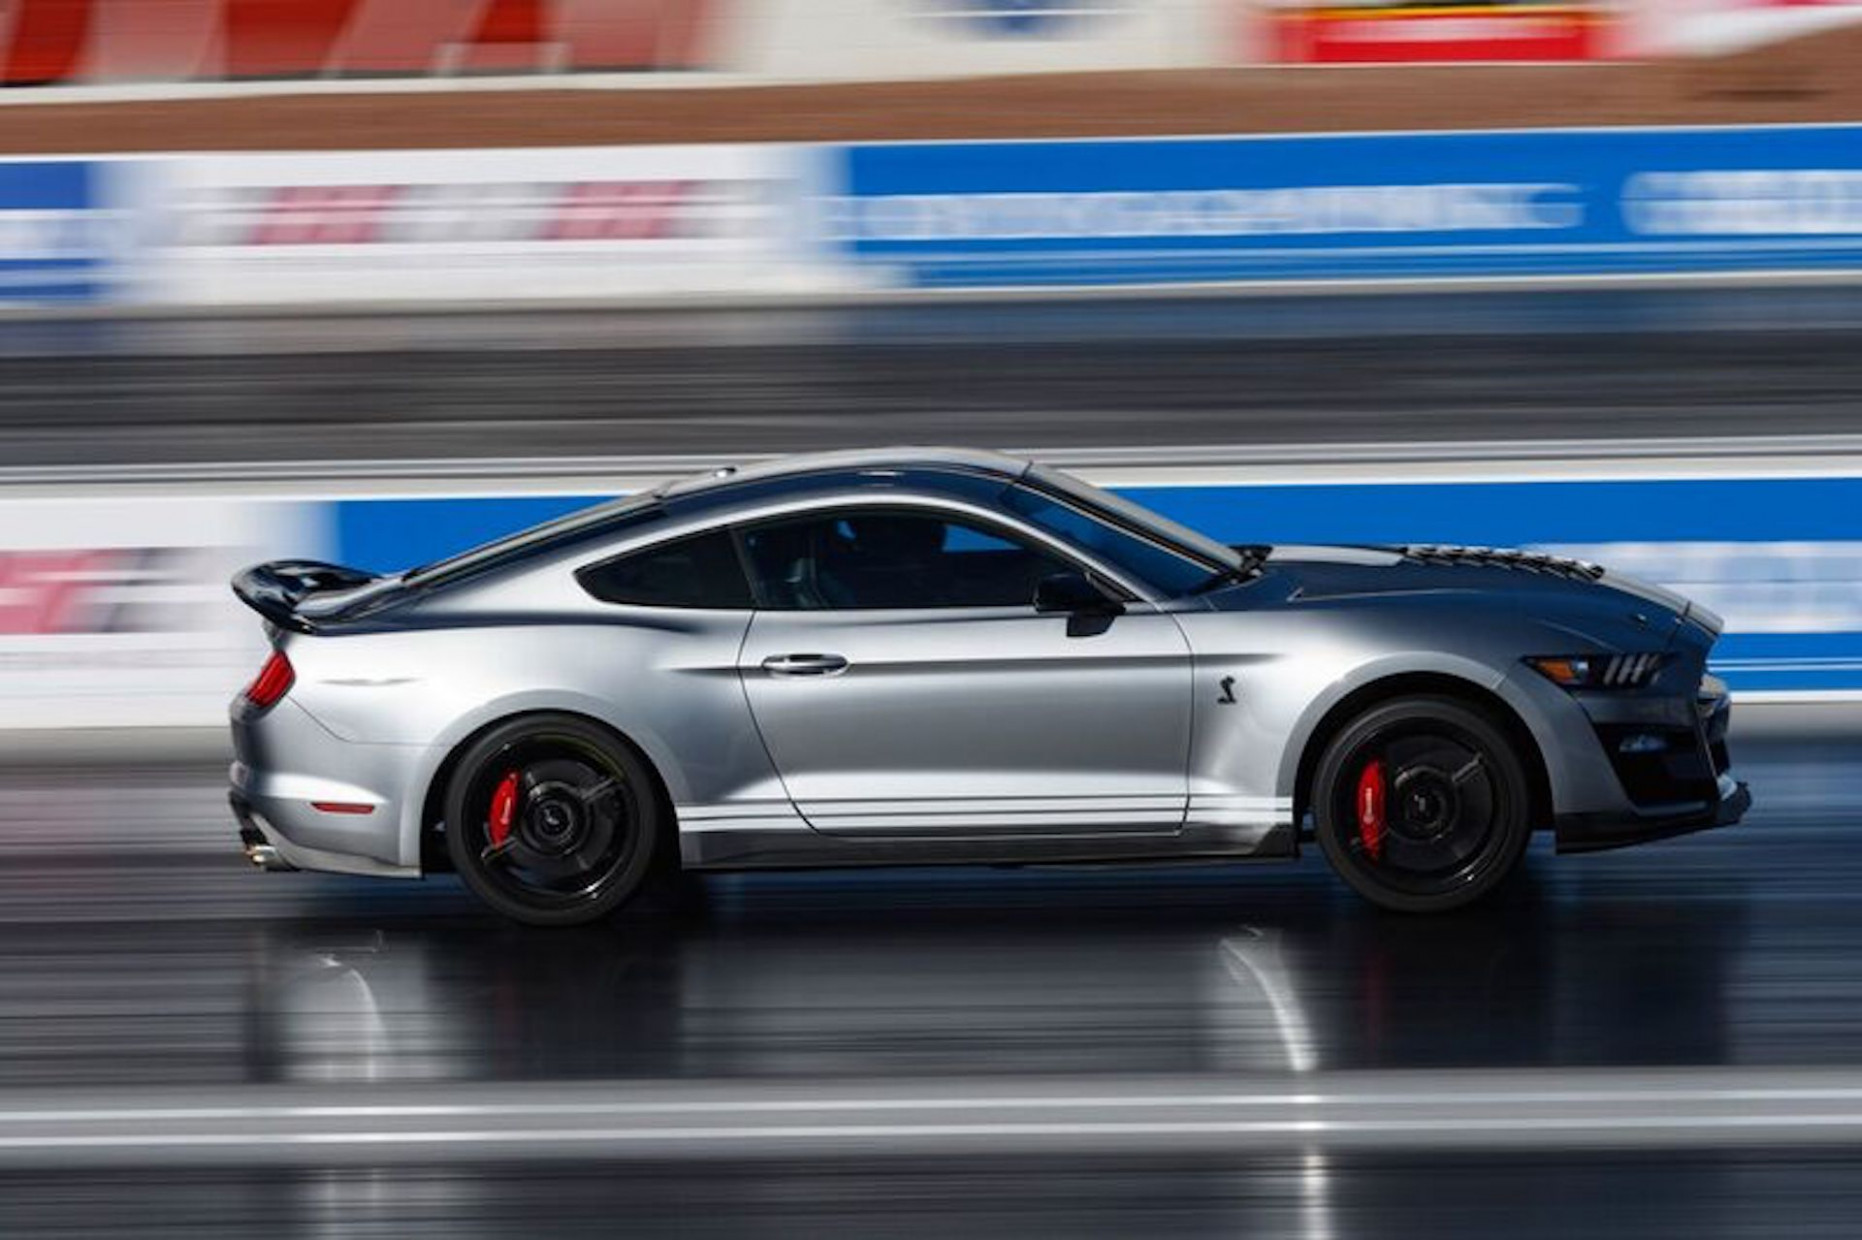 Performance 2022 Mustang